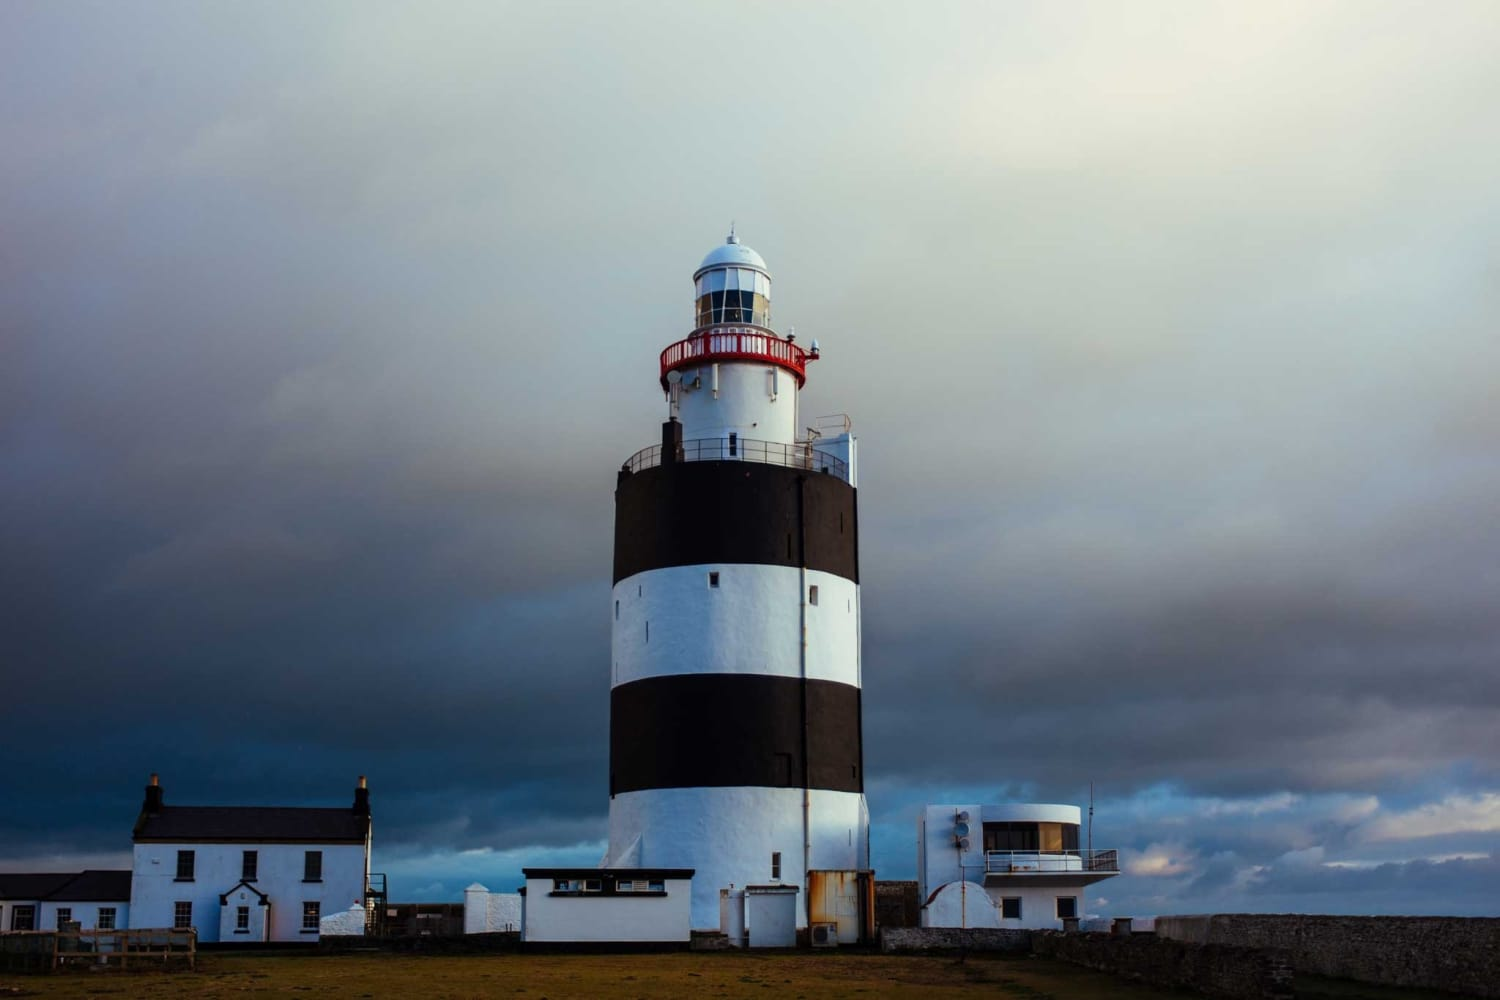 Nine of the Most Iconic Lighthouses in the World (pt 2)